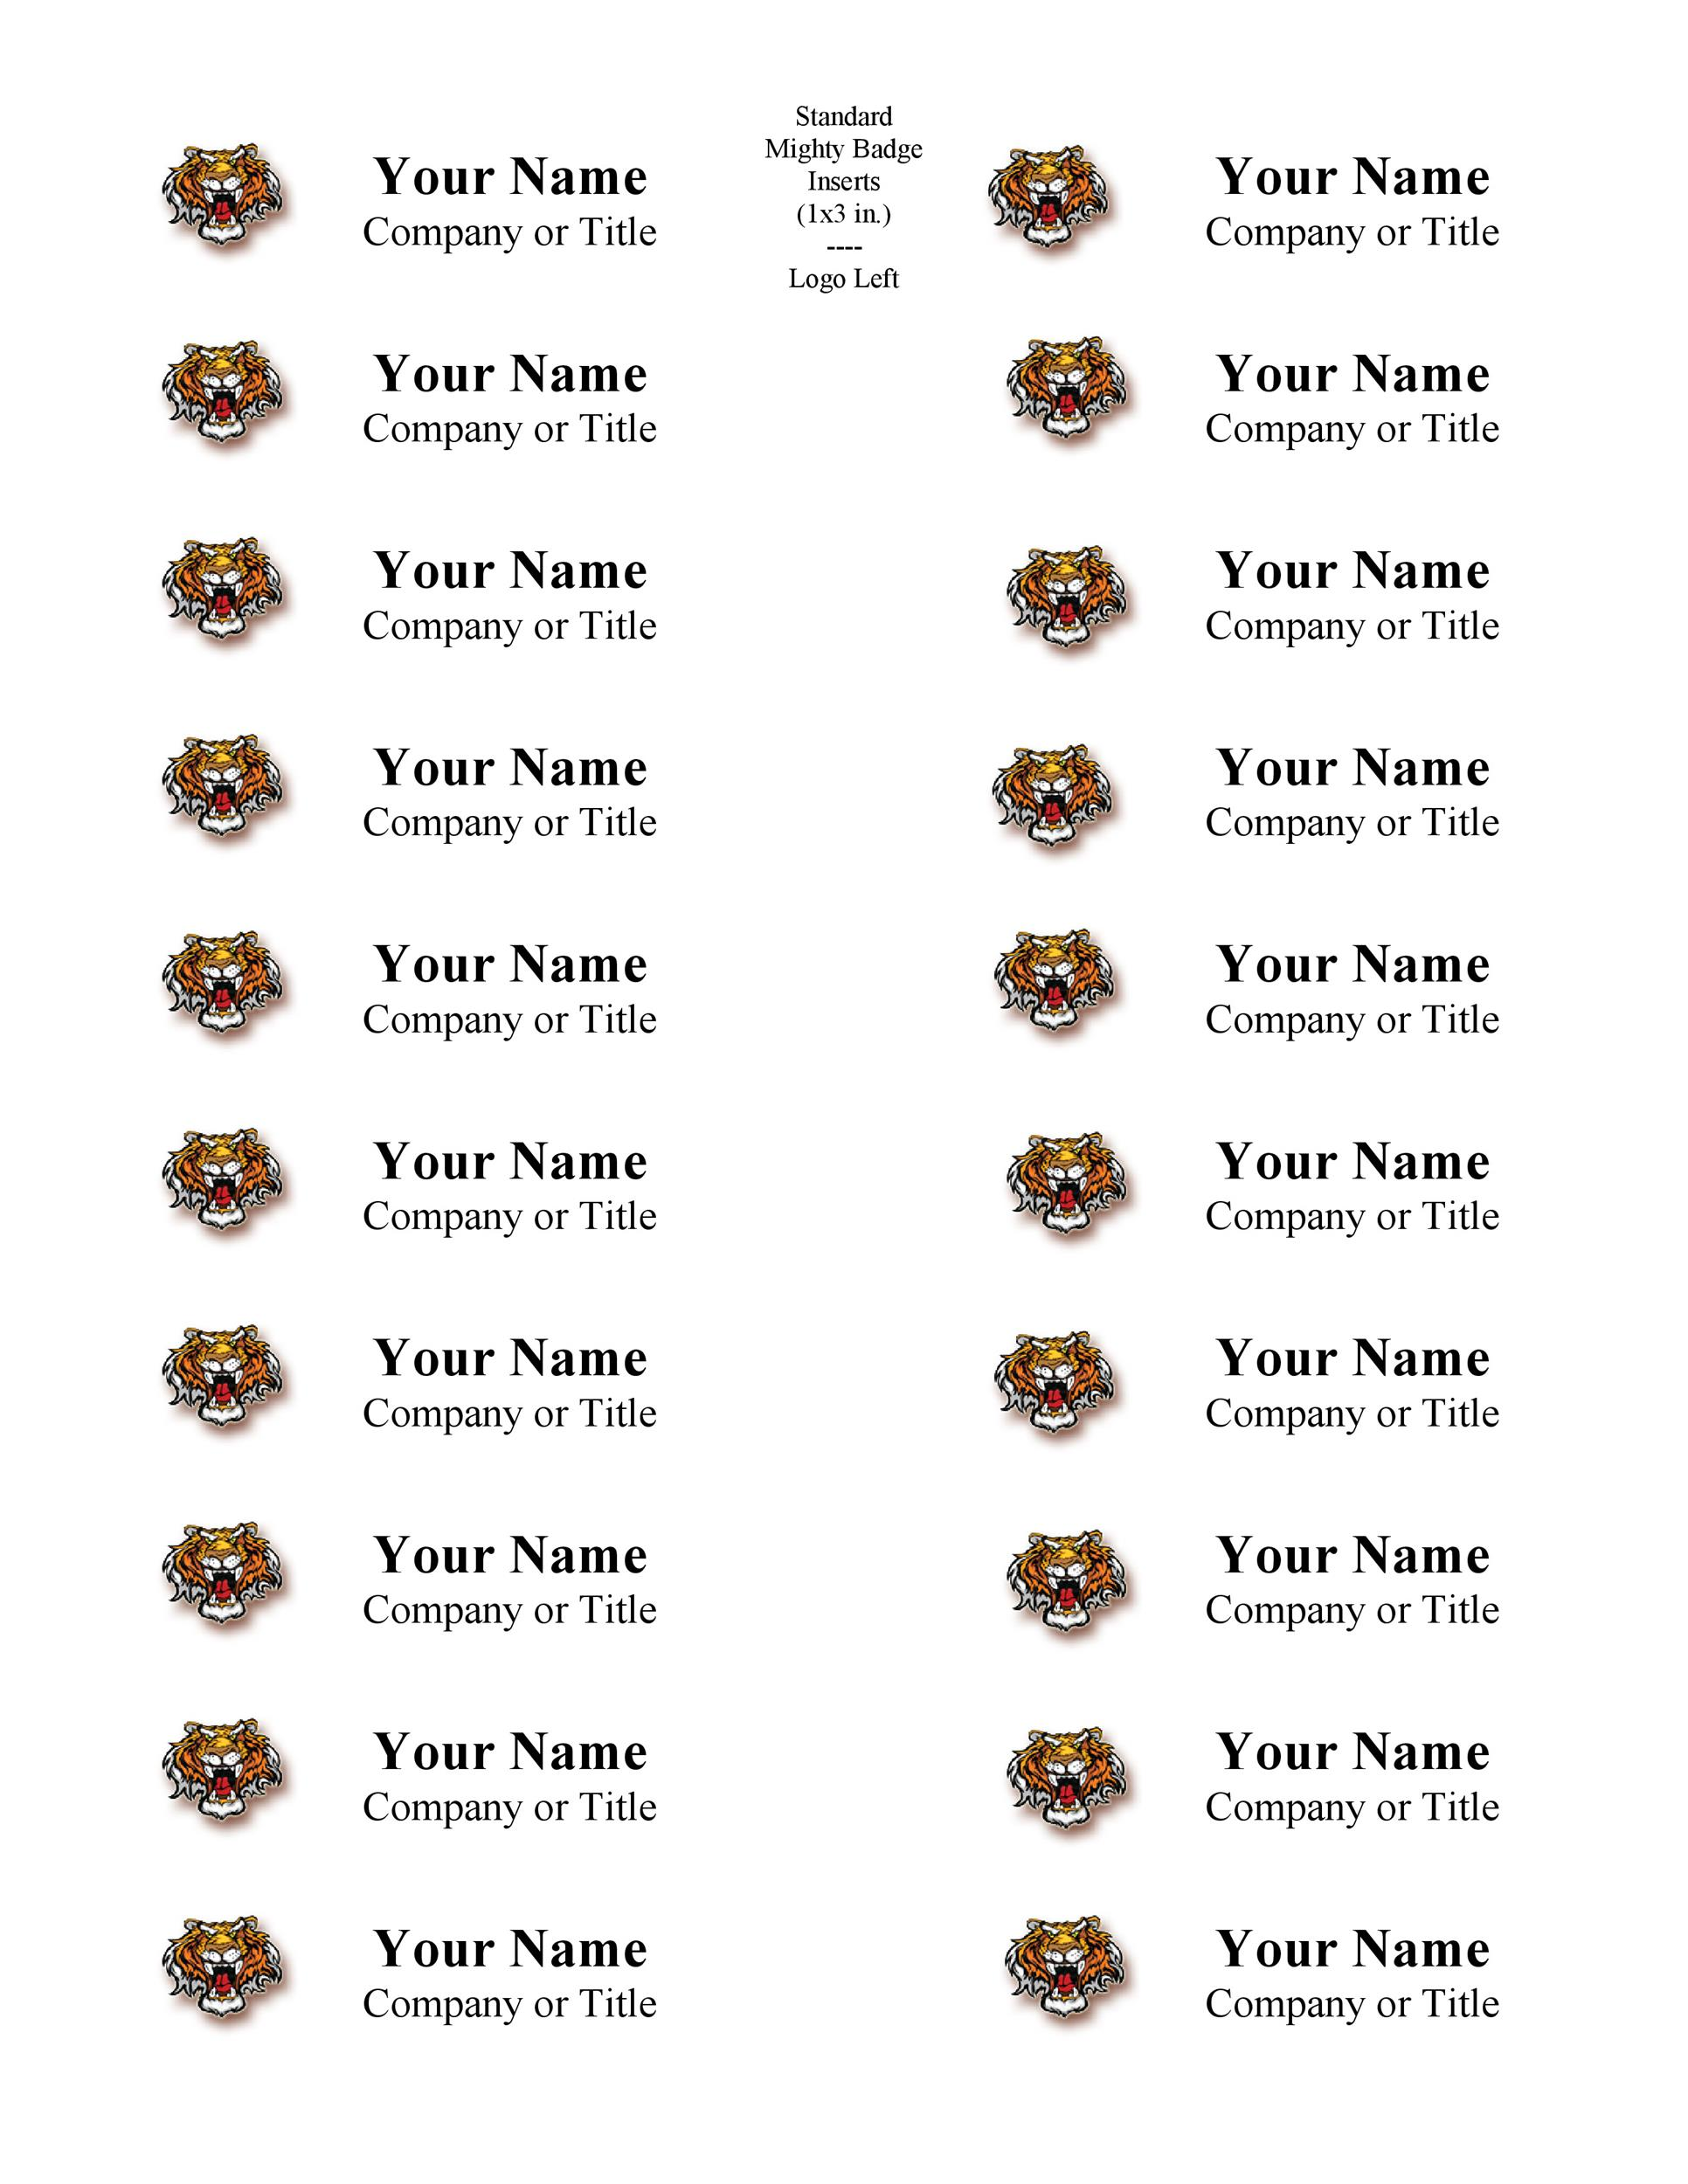 Free Name Tag Badge Templates Template Lab - Name badge template with photo